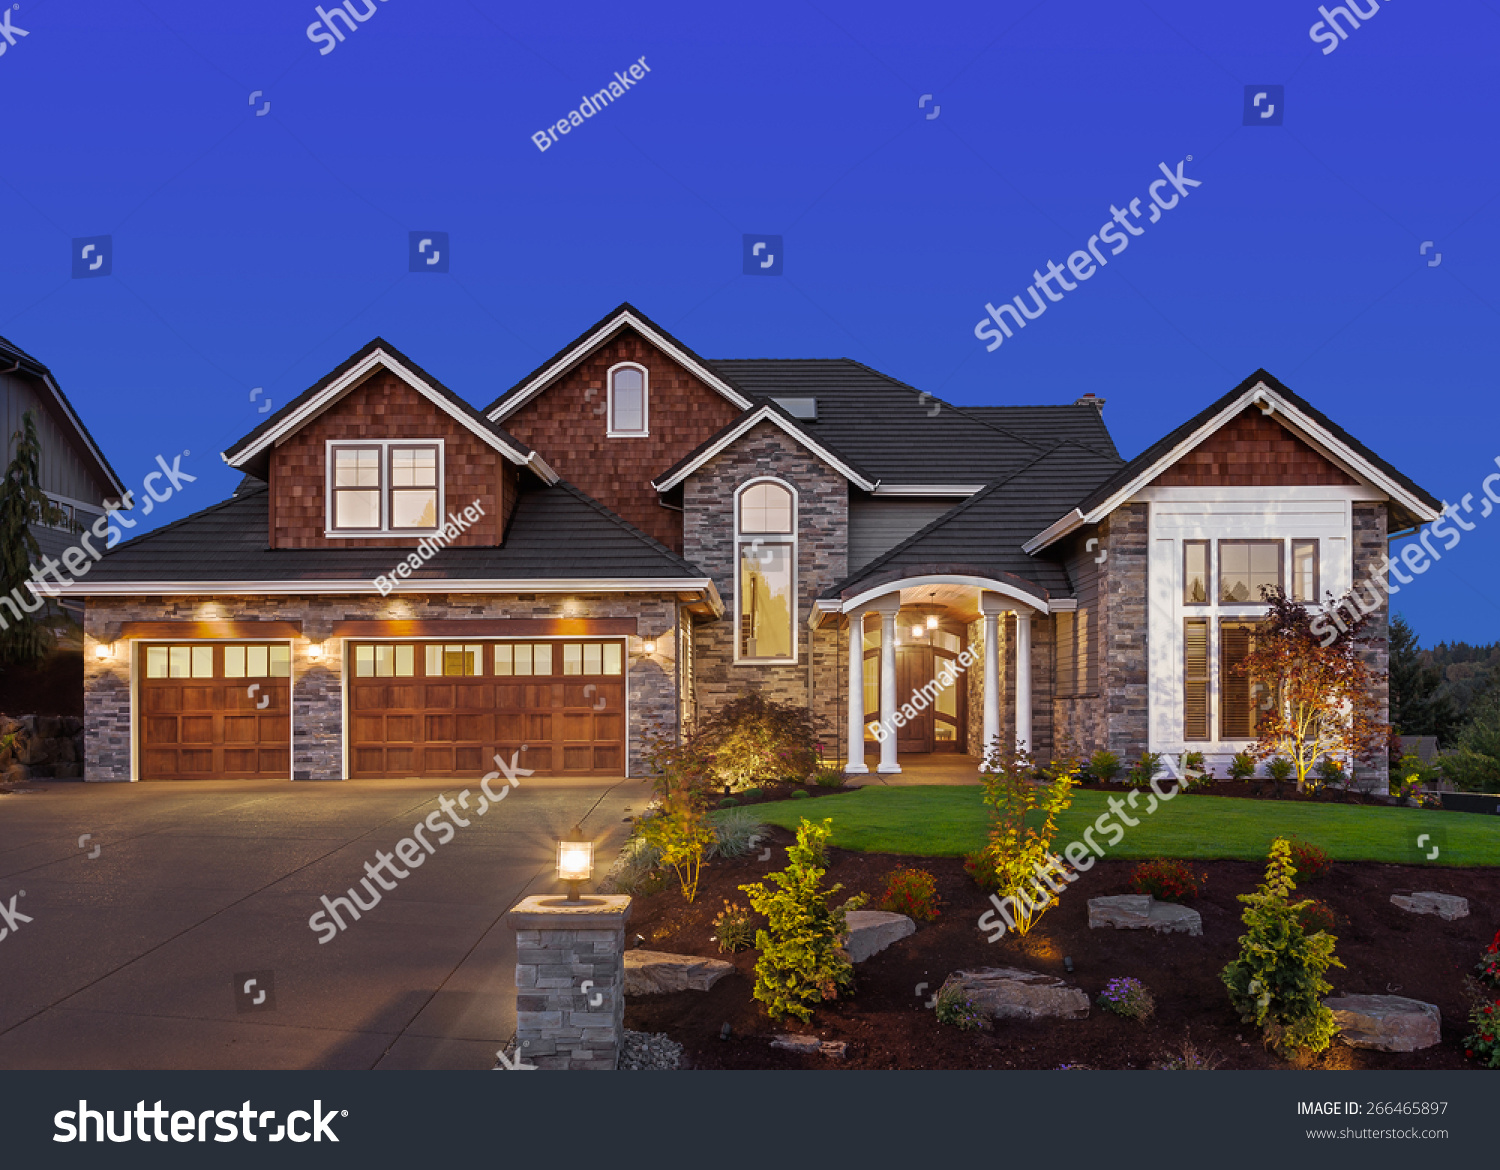 Home Exterior At Night New Luxury House At Night With Deep Blue Sky